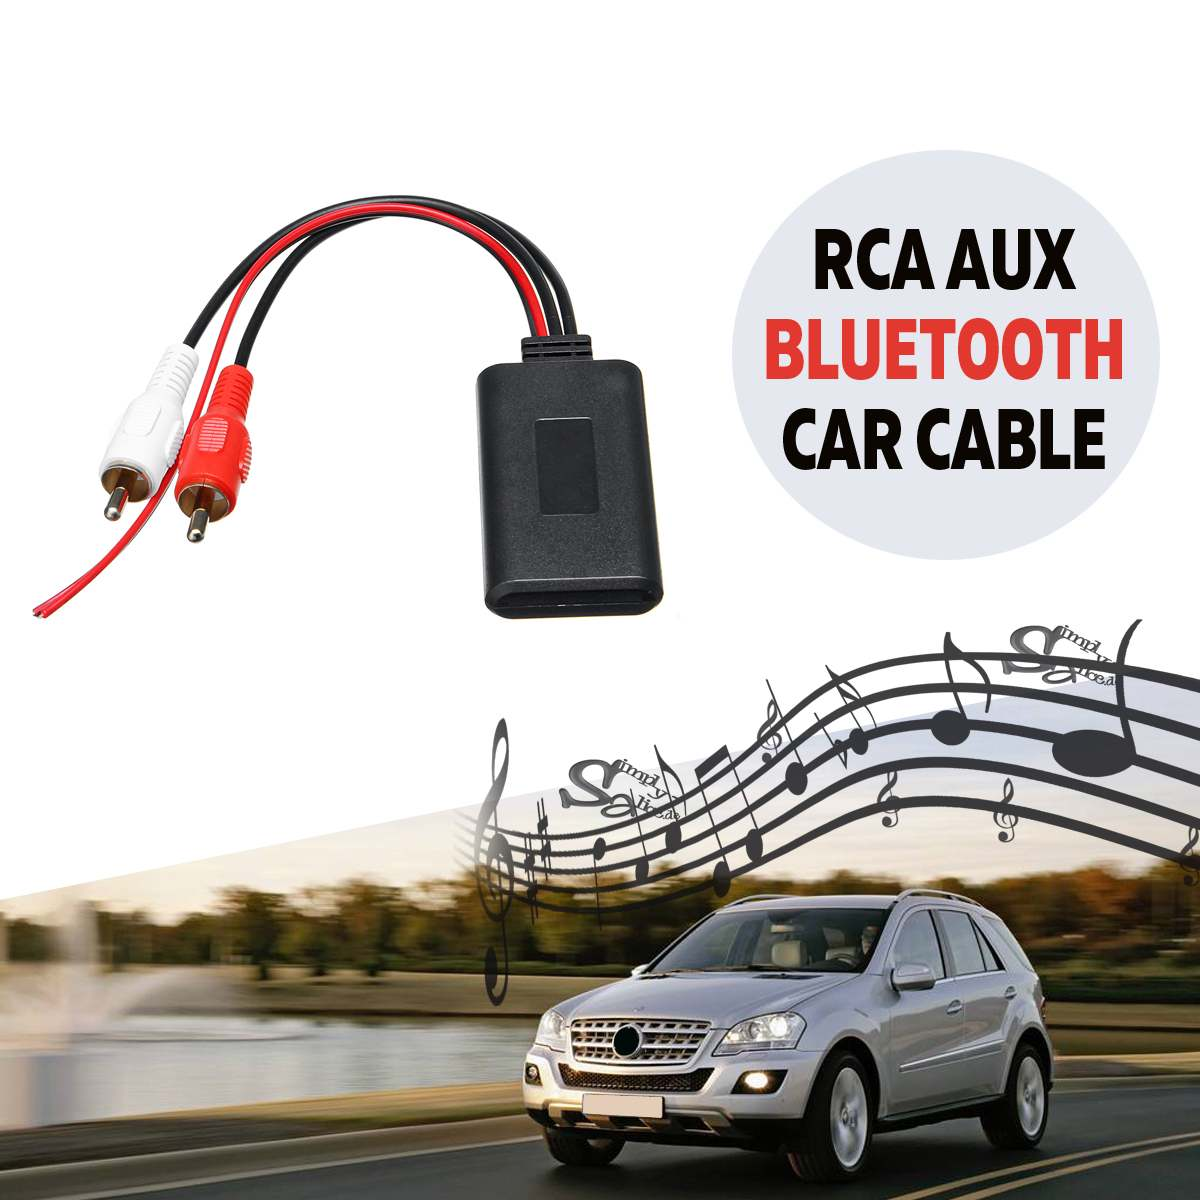 2 RCA AUX IN Car bluetooth Wireless Connection Adapter for Stereo Music Audio Input Wireless AUX Cable Universal for Truck Auto